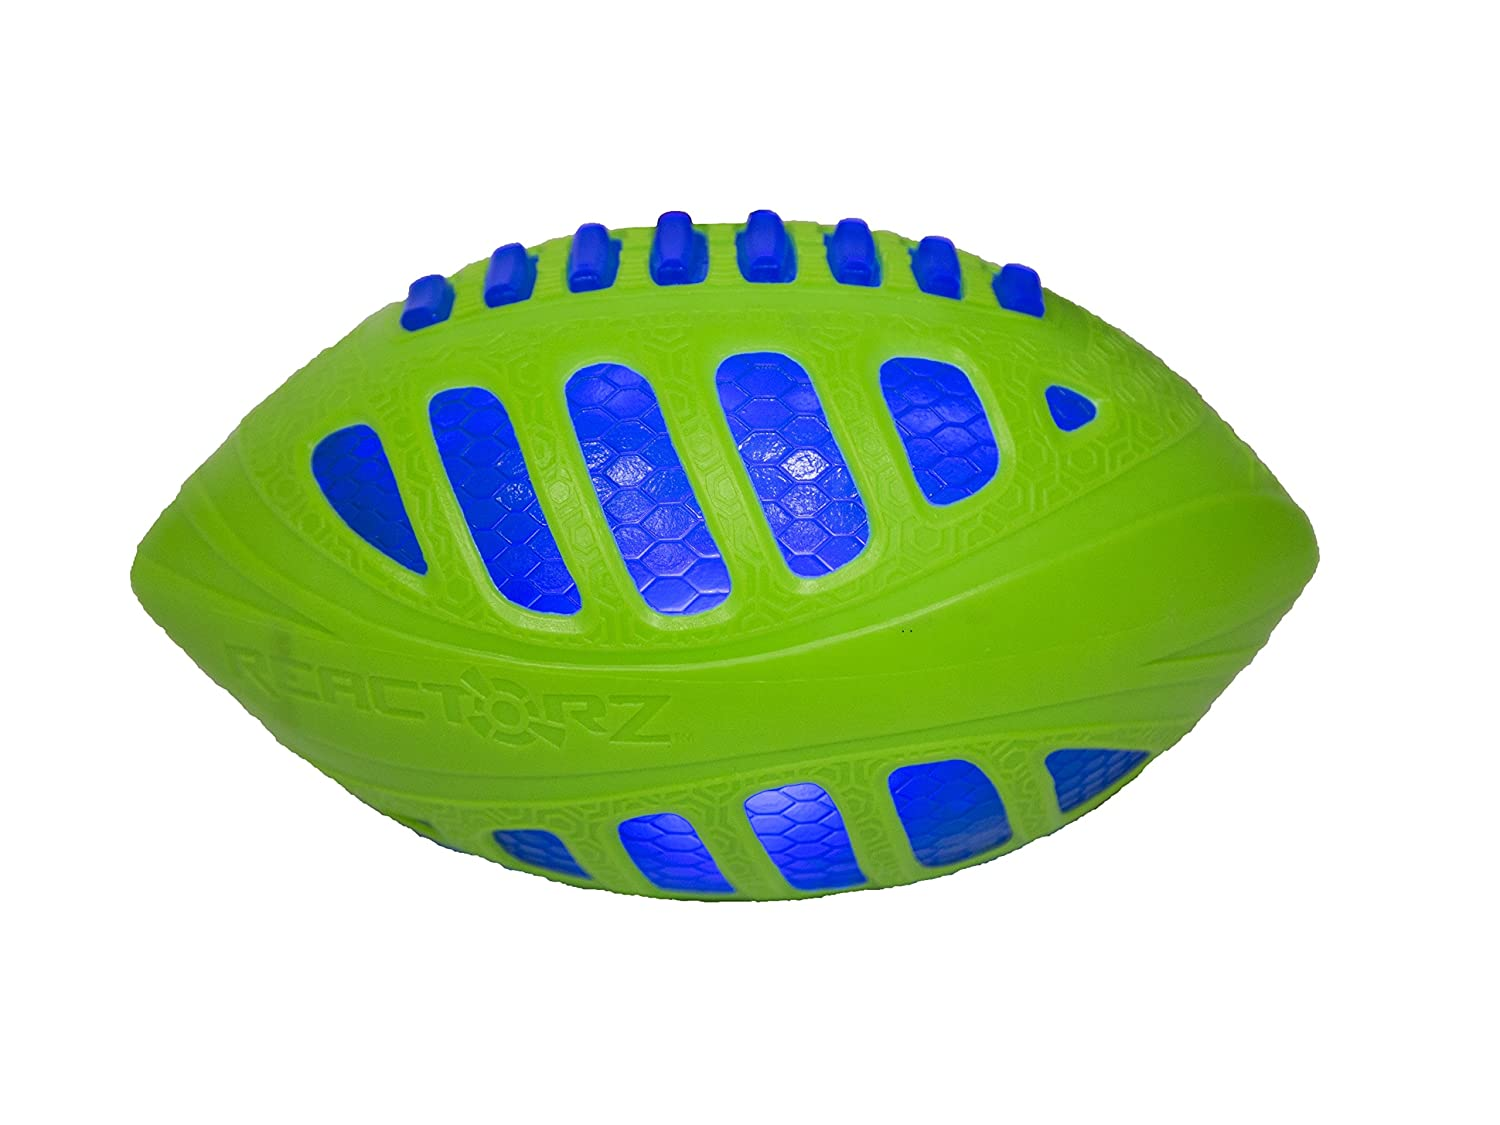 Reactorz Light-Up Football, Green by COOP